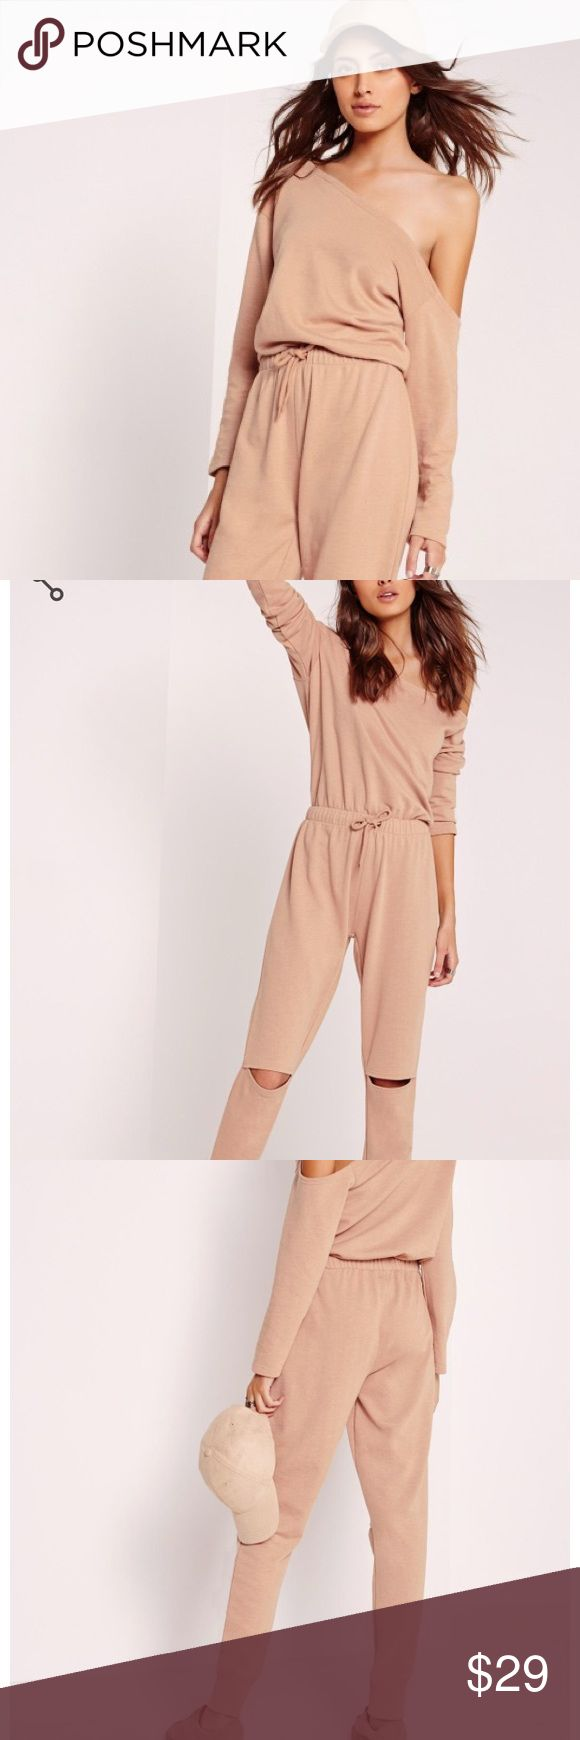 """Off the Shoulder Nude Jumpsuit NWT! Still in packaging. Work some major day cool vibes this season in this seriously standout nude jumpsuit. in an on point soft touch jersey fabric this off the shoulder number with slit knee feature will give you a killer' day time style. team with flats and shoulder bag for an effortlessly styled day look. approx length 139cm/55"""" (based on a uk size 8 sample)  95% viscose 5% elastane   cindy wears a uk size 8 / eu size 36 / us size 4 and her height is 5'9""""…"""